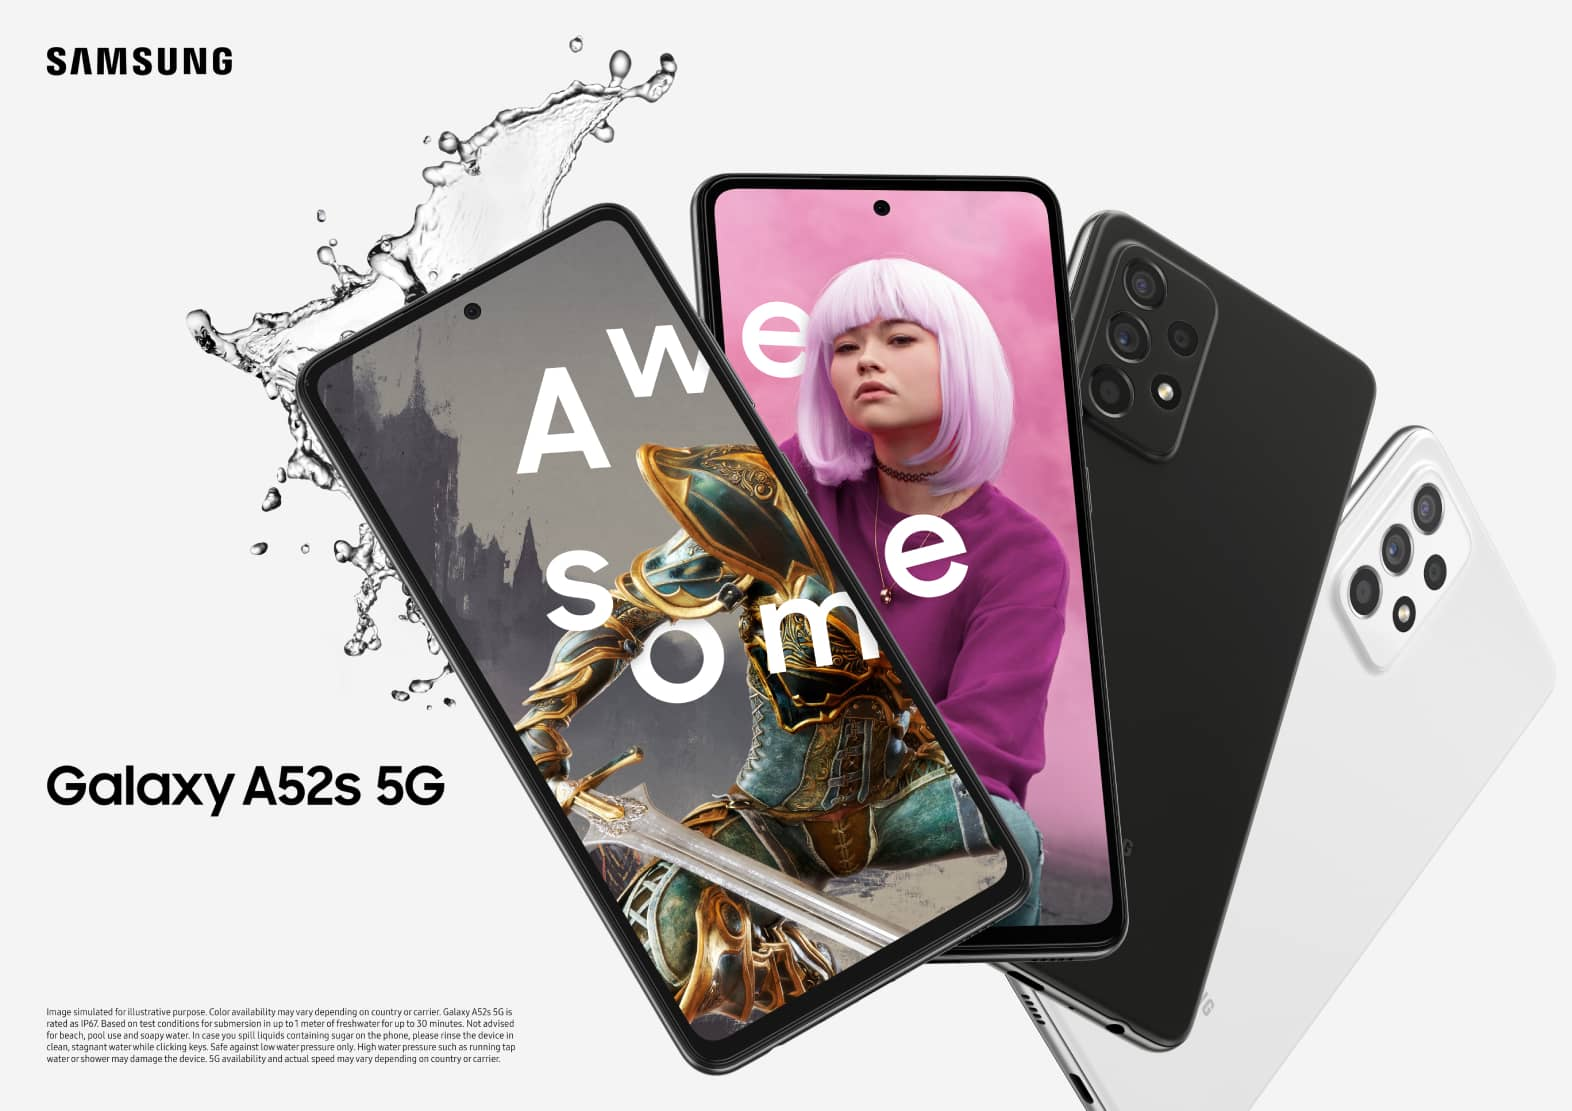 Say Hello to Your 'Next-Level' Galaxy A52s 5G